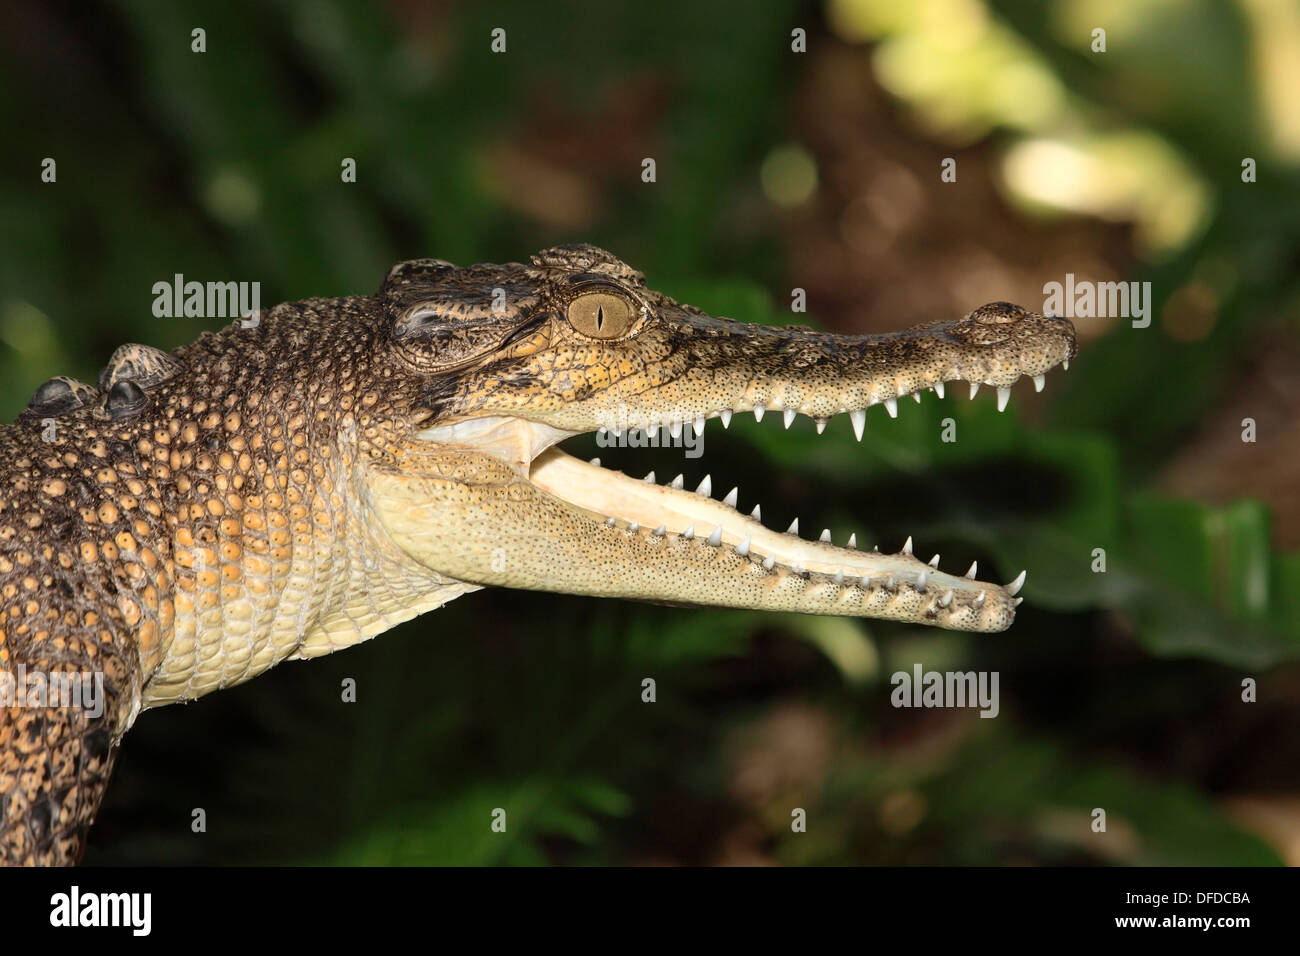 A young saltwater crocodile, mouth open and showing the teeth. Crocodylus porosus, Australia - Stock Image